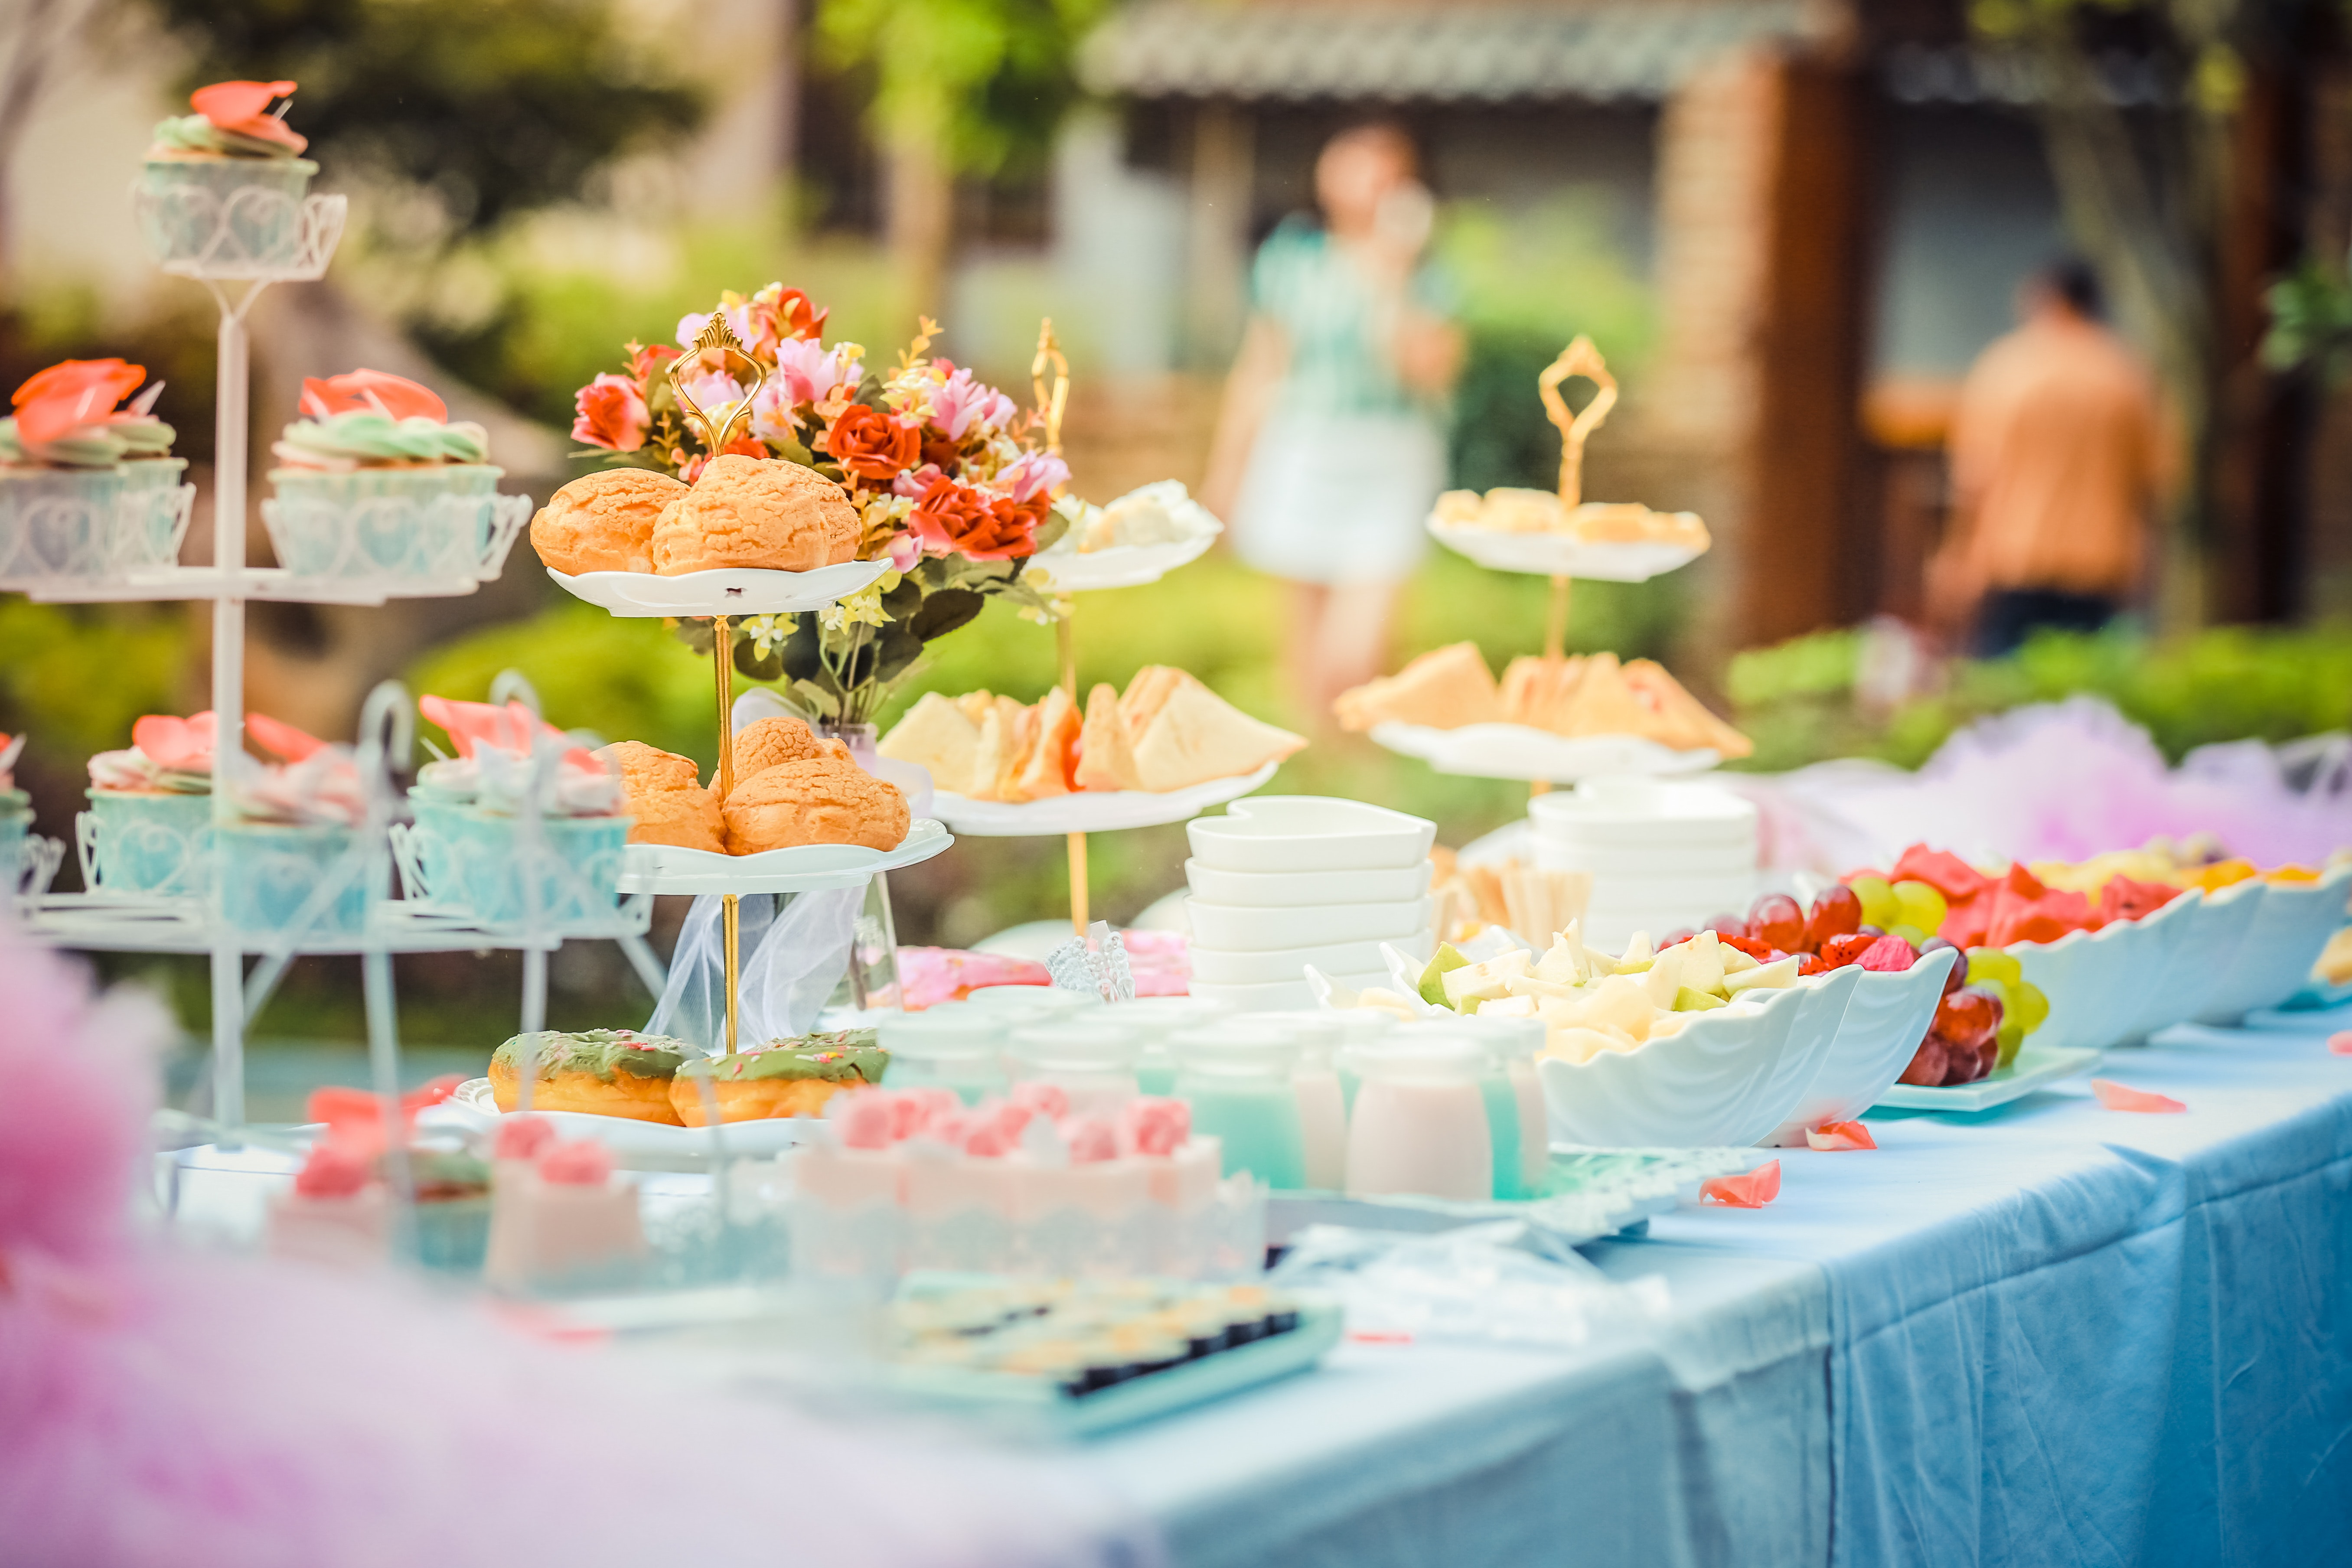 How To Plan a Fantastic Baby Shower